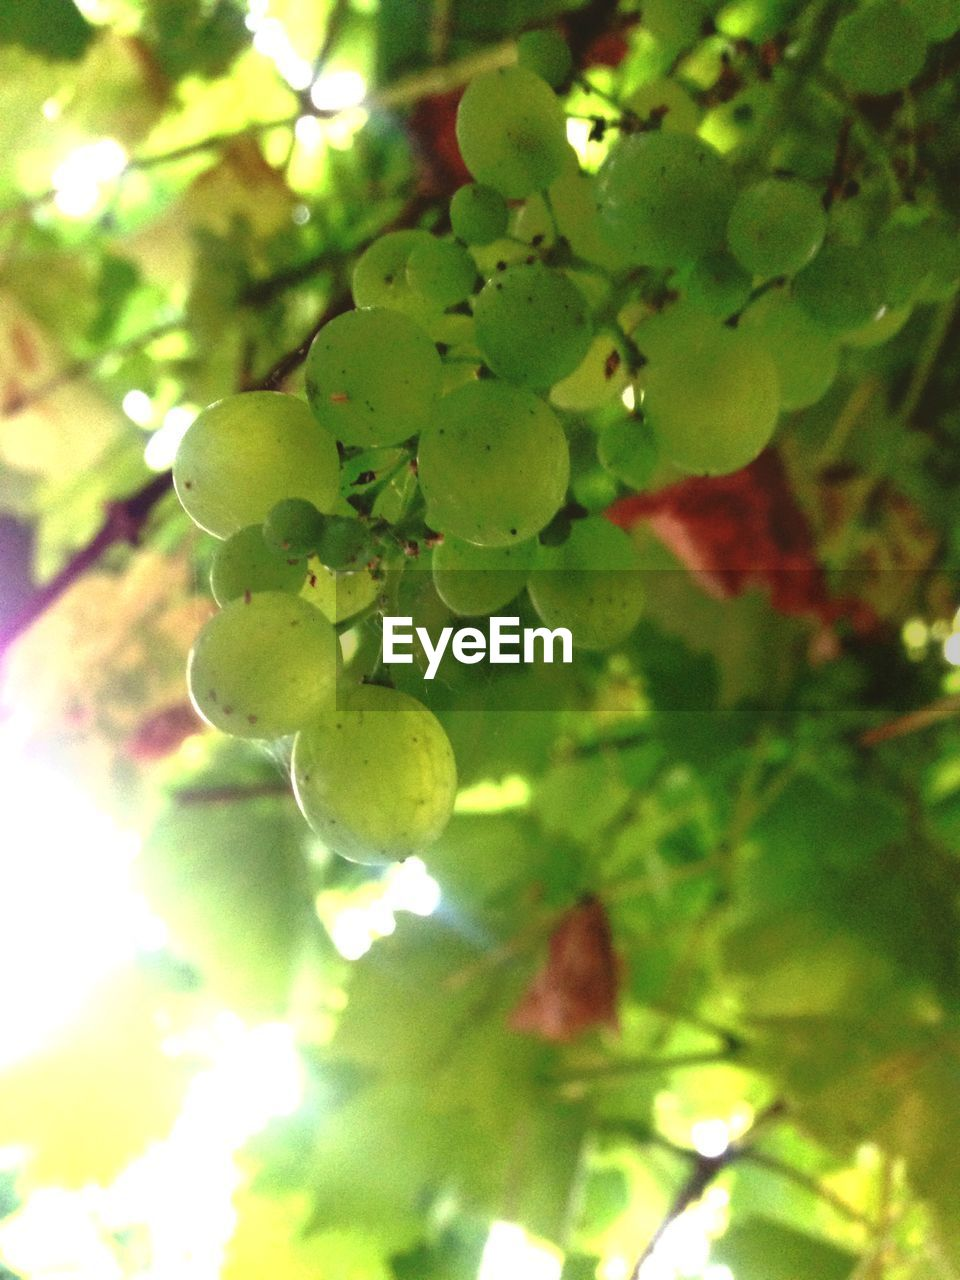 growth, fruit, nature, food and drink, tree, beauty in nature, day, no people, green color, close-up, outdoors, focus on foreground, leaf, freshness, plant, food